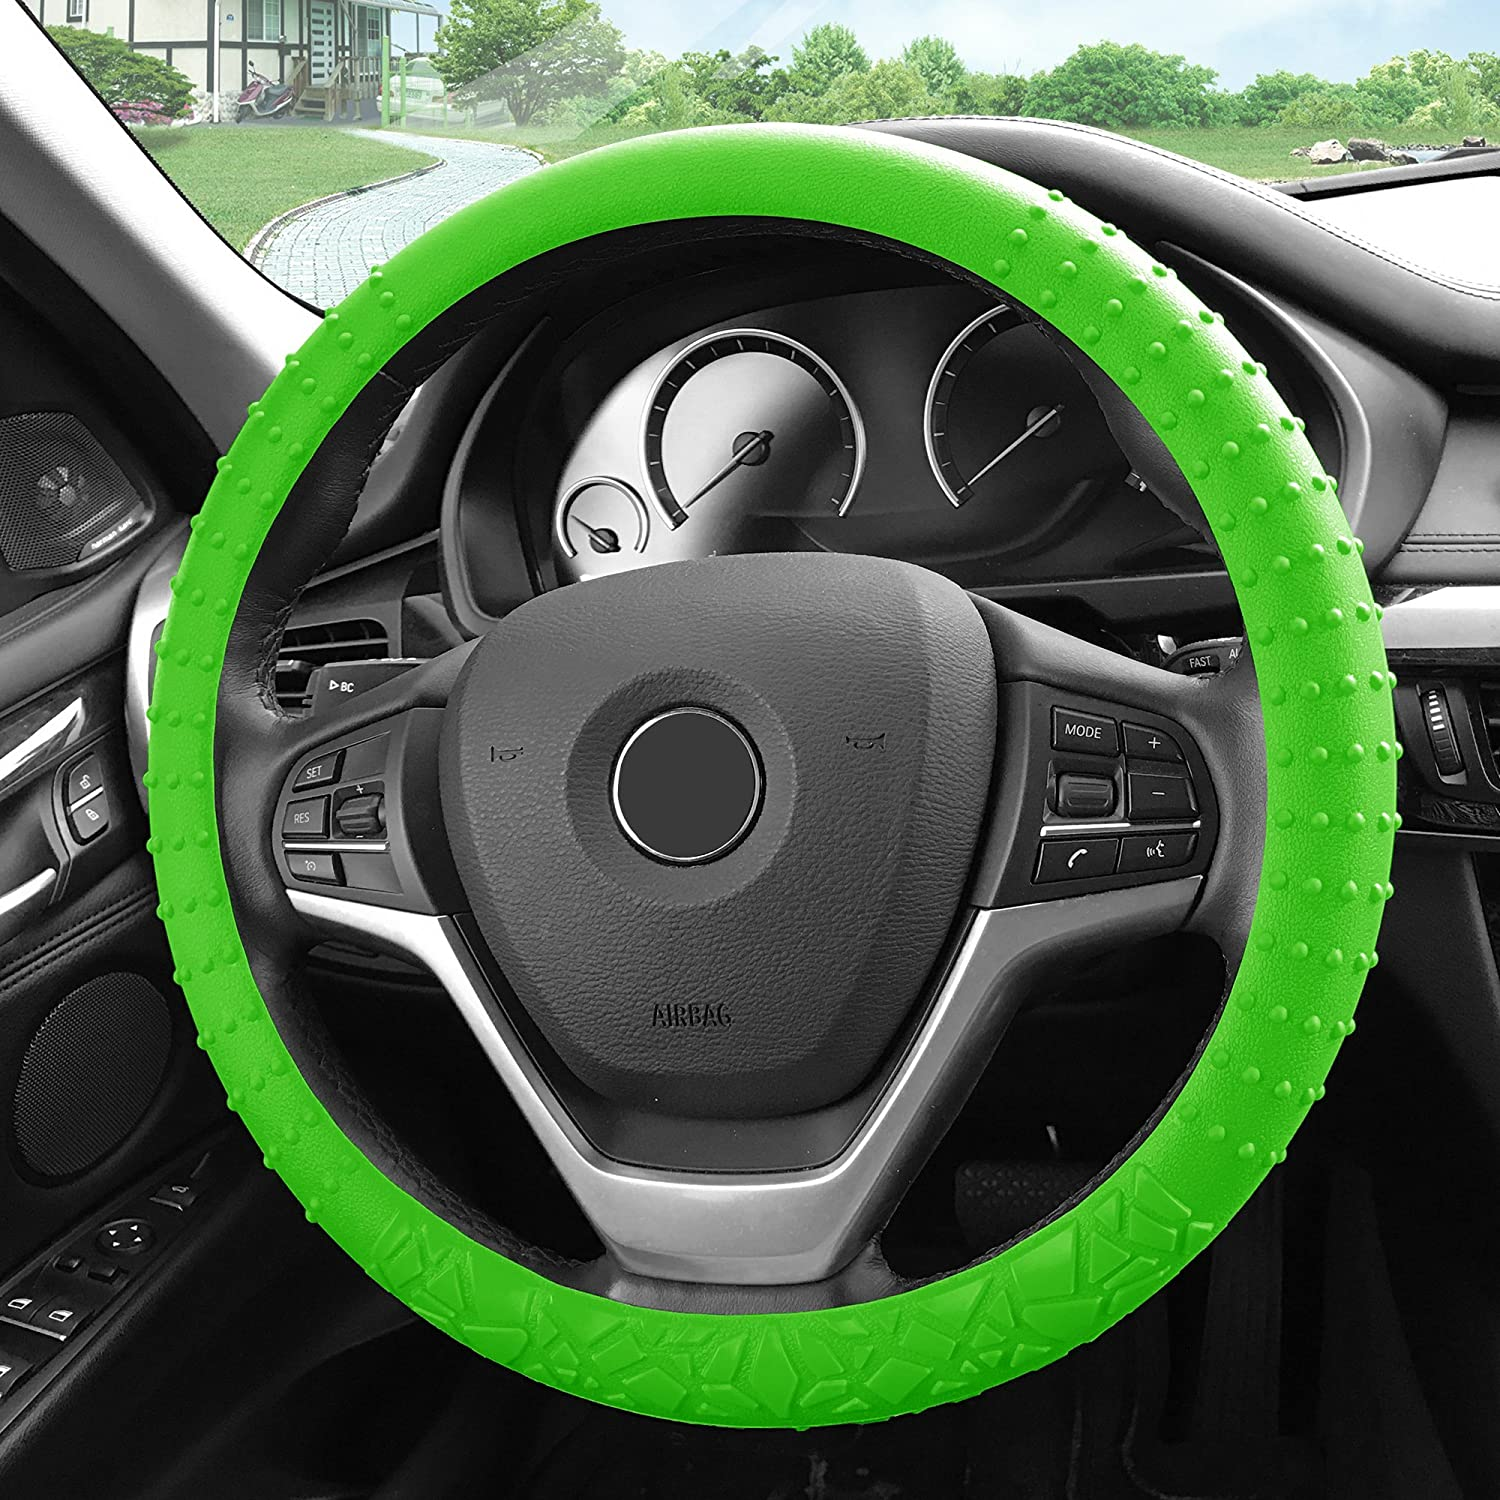 Silicone W. Nibs /& Pattern Massaging grip Wheel Cover Color-Fit Most Car Truck Suv or Van FH Group FH3002GREEN Green Steering Wheel Cover